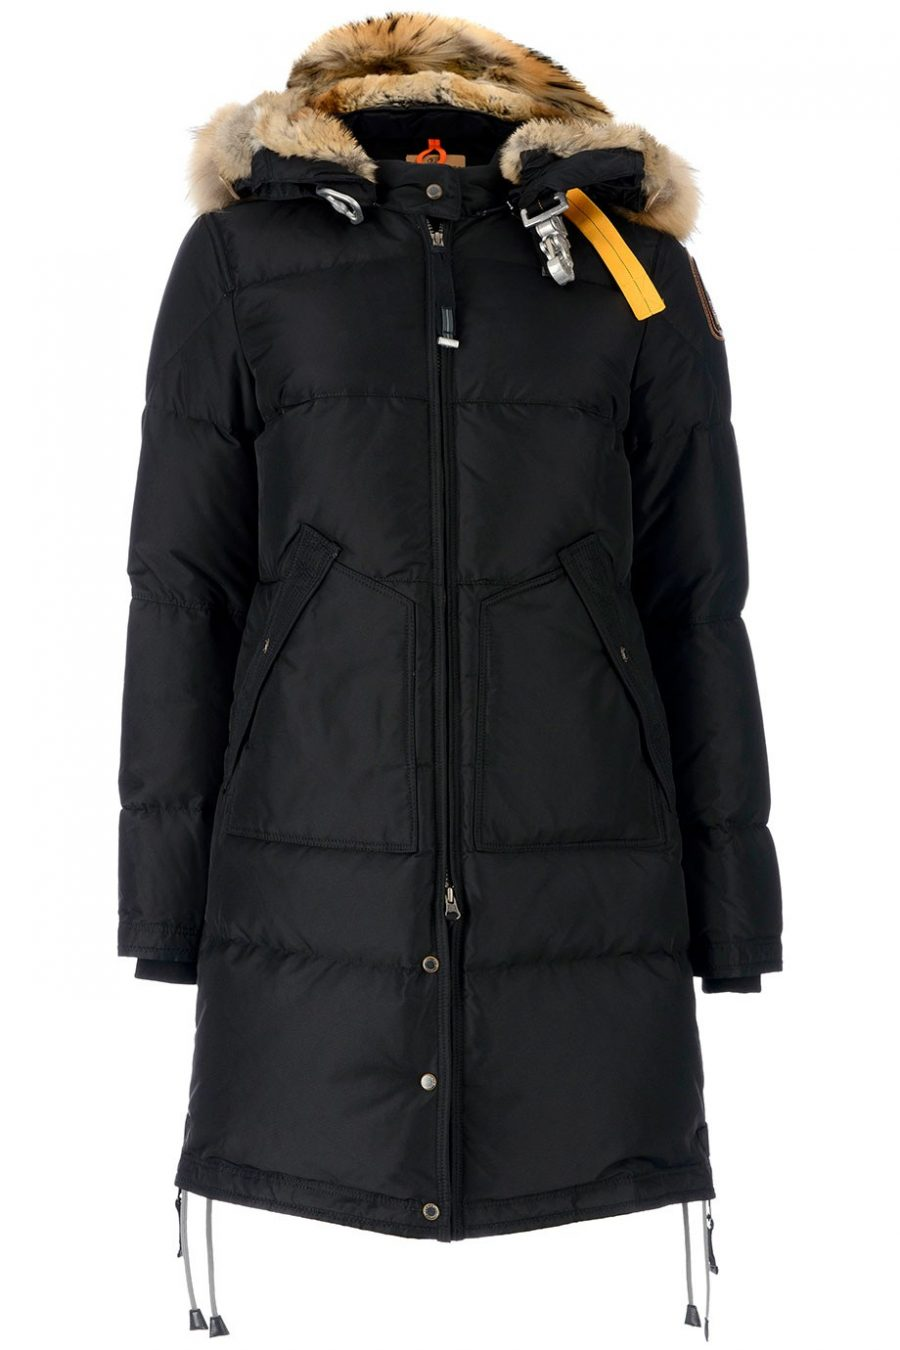 parajumpers outlet bear